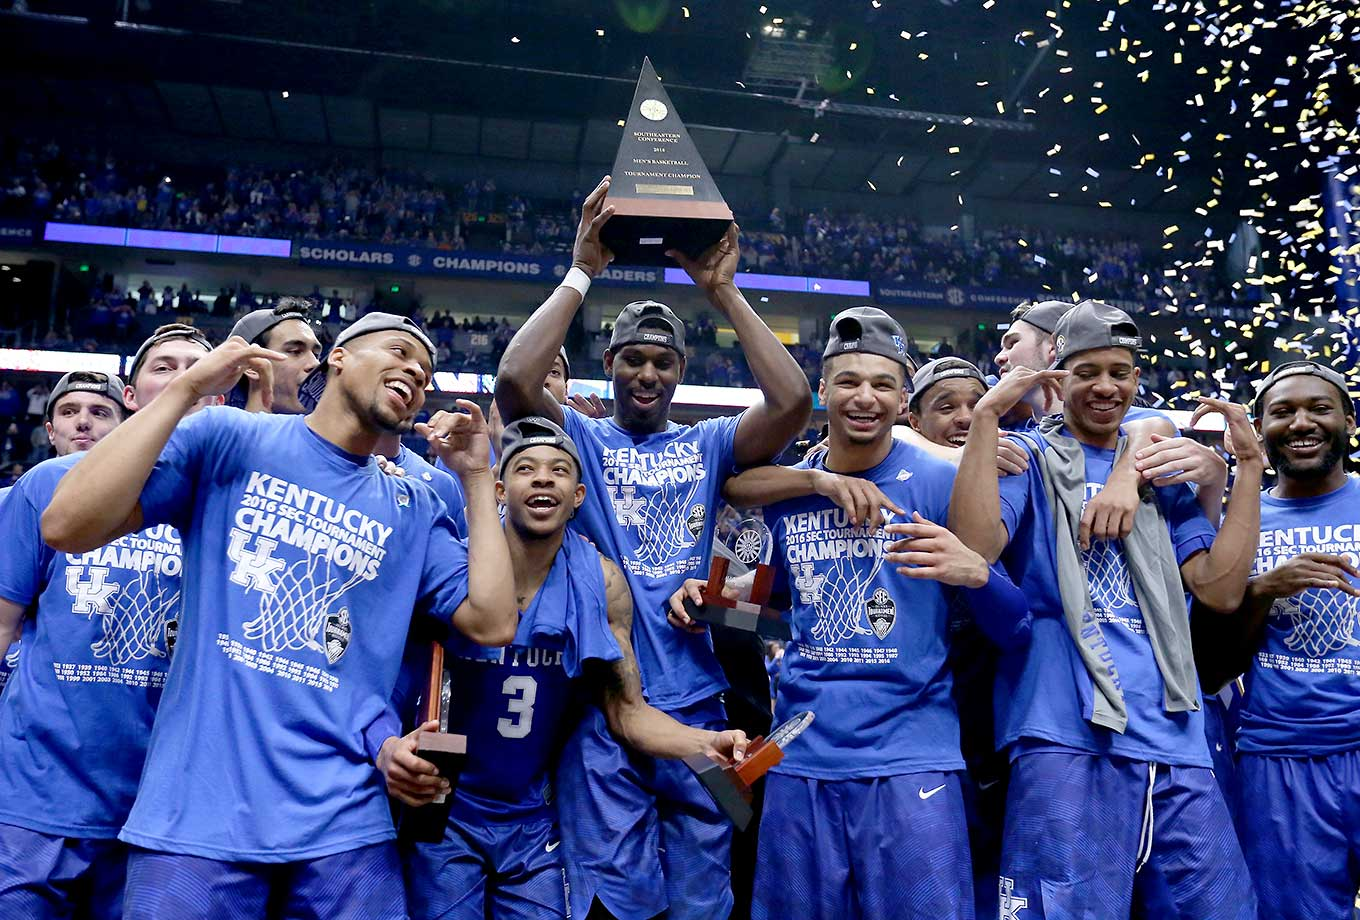 The Kentucky Wildcats celebrate after their 82-77 OT win over Texas A&M.